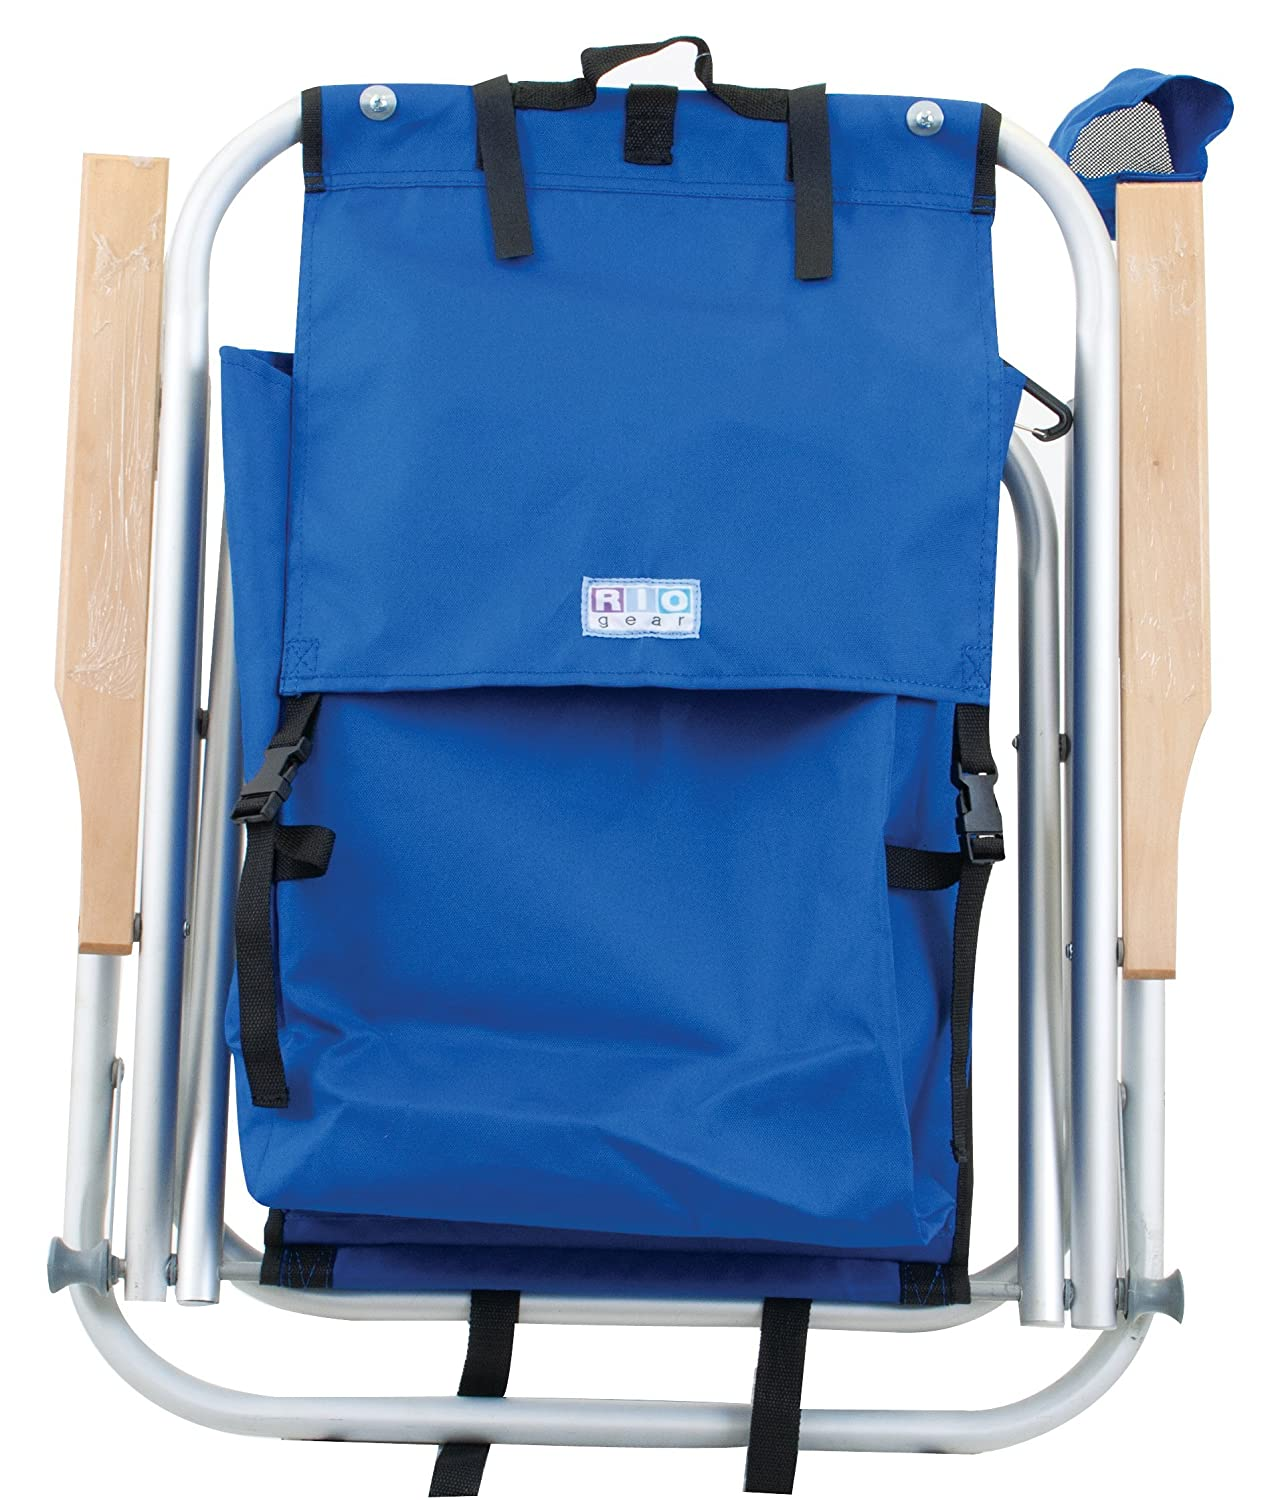 Wearever backpack chair - Amazon Com Rio Brands Aluminum Frame Backpack Chair Sc540 Camping Chairs Sports Outdoors